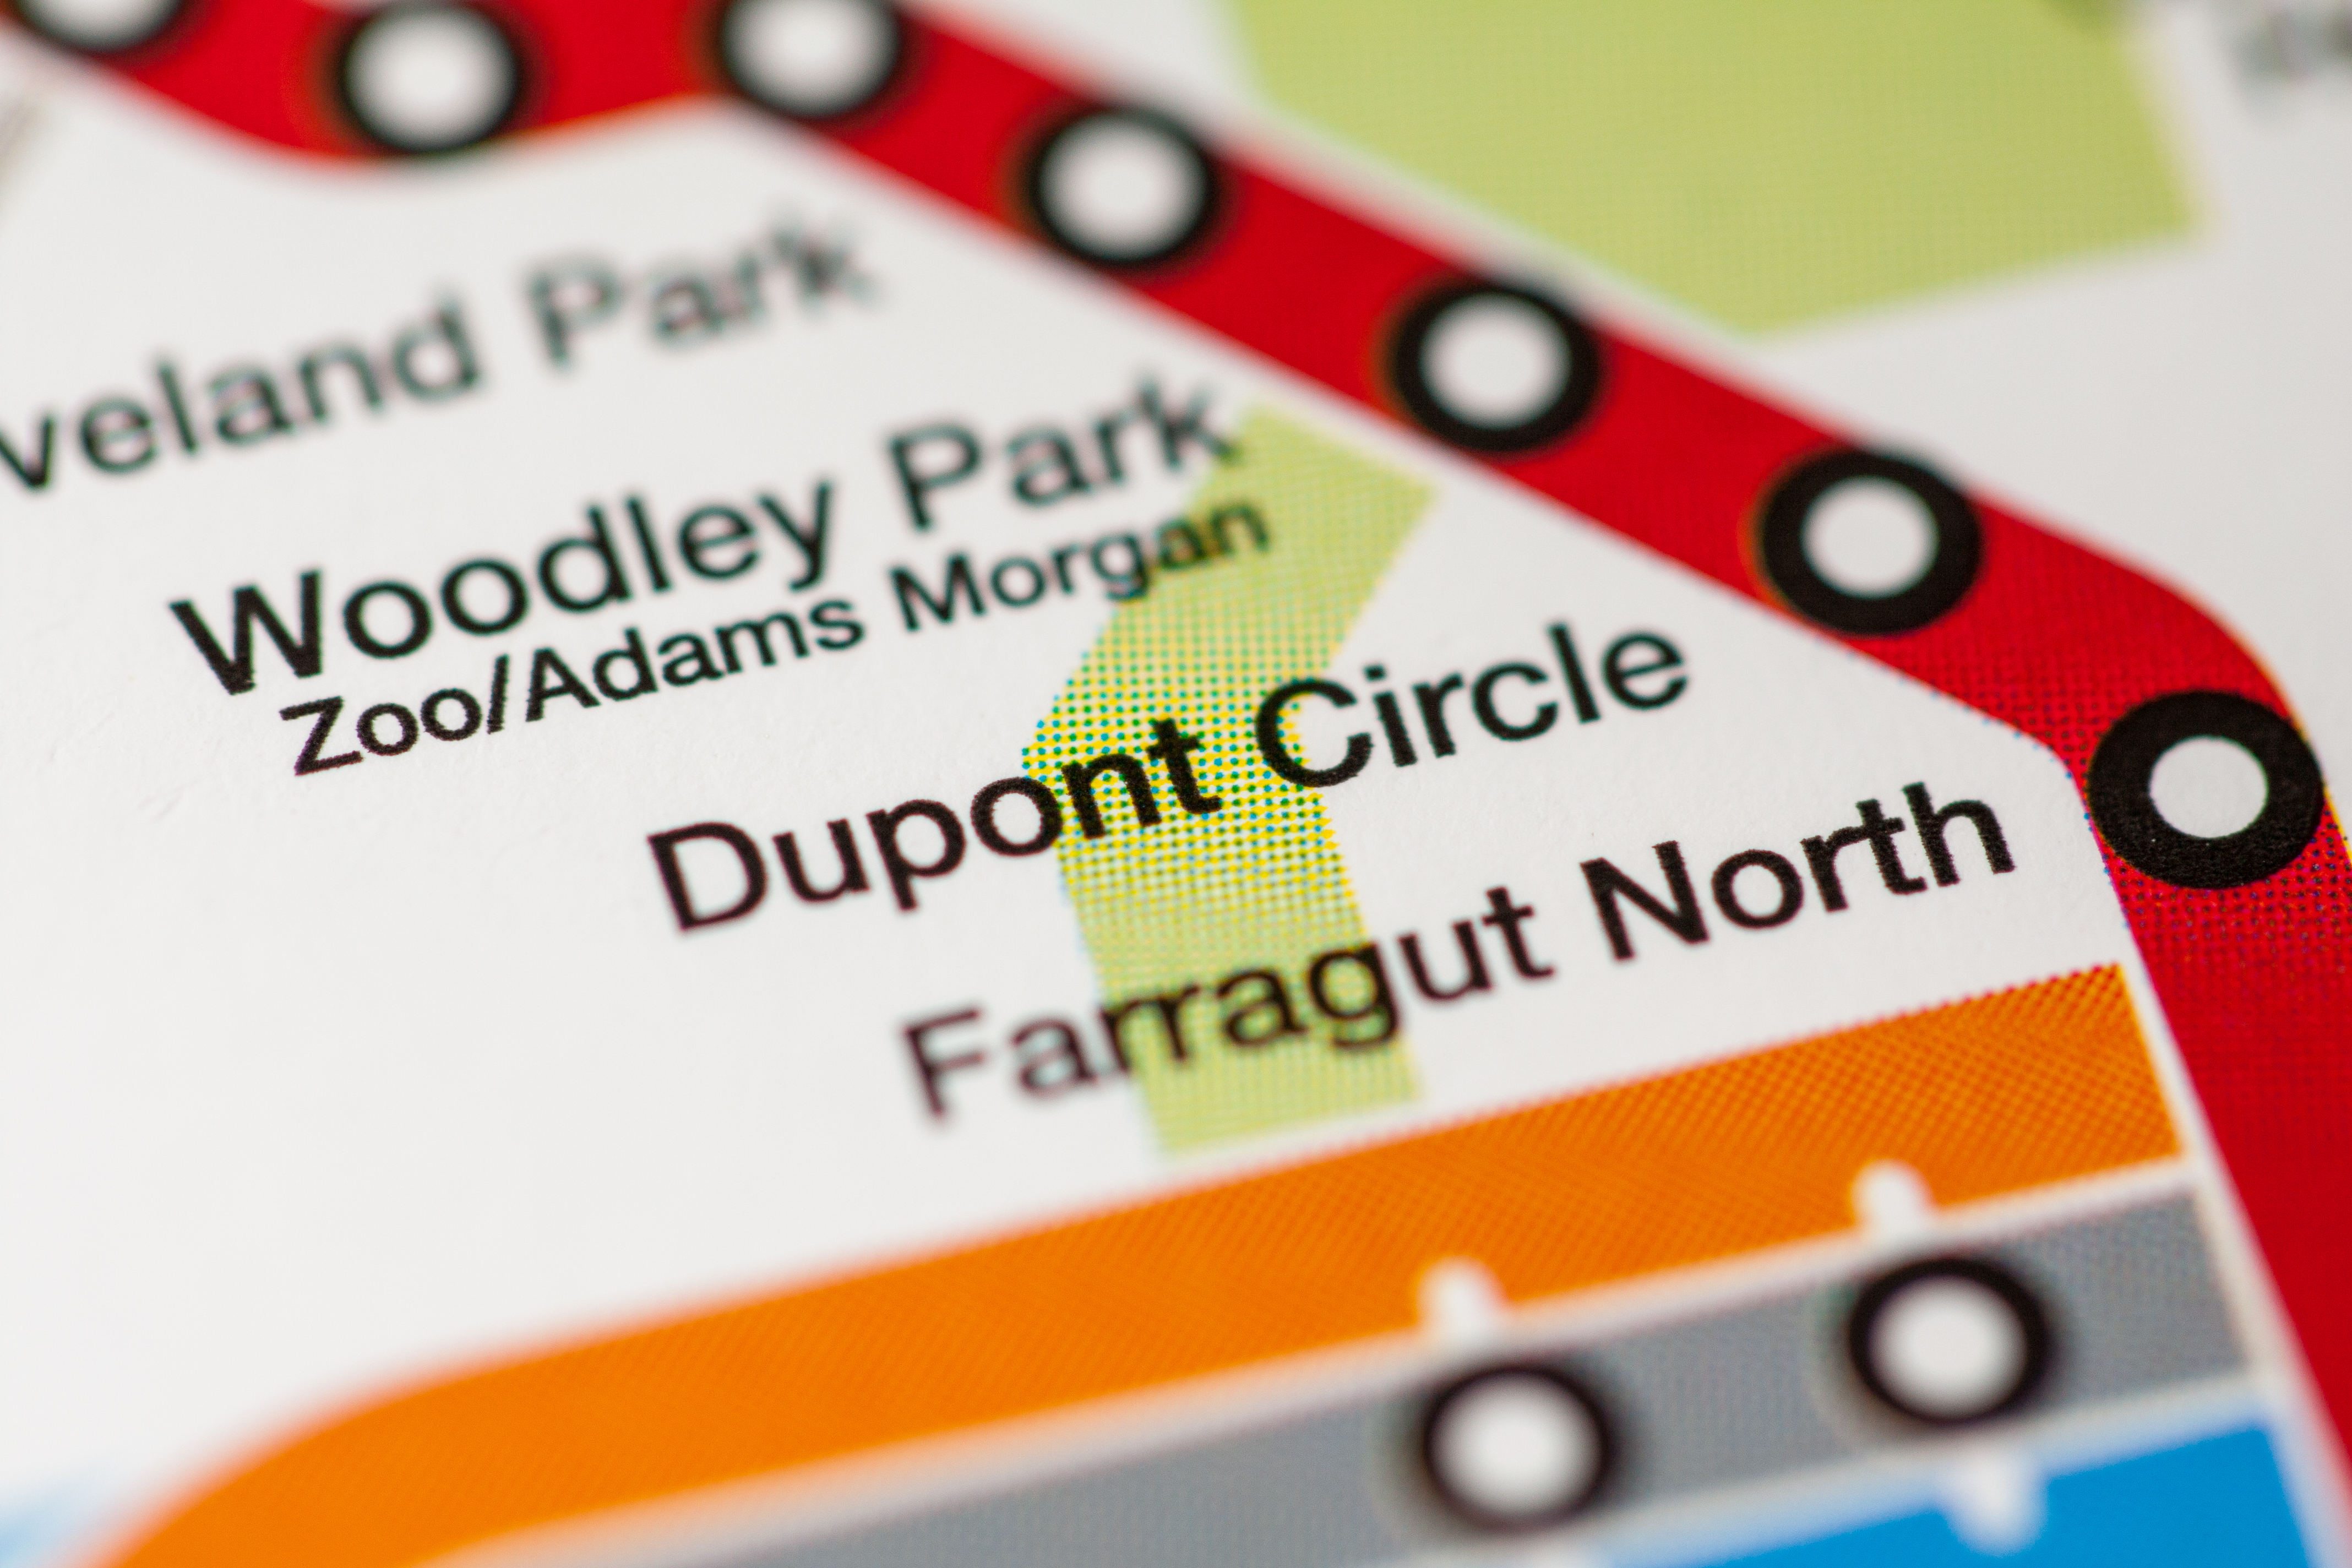 A Metro map showing the Woodley Park, Dupont Circle, and Farragut North stations on Metro's Red Line.